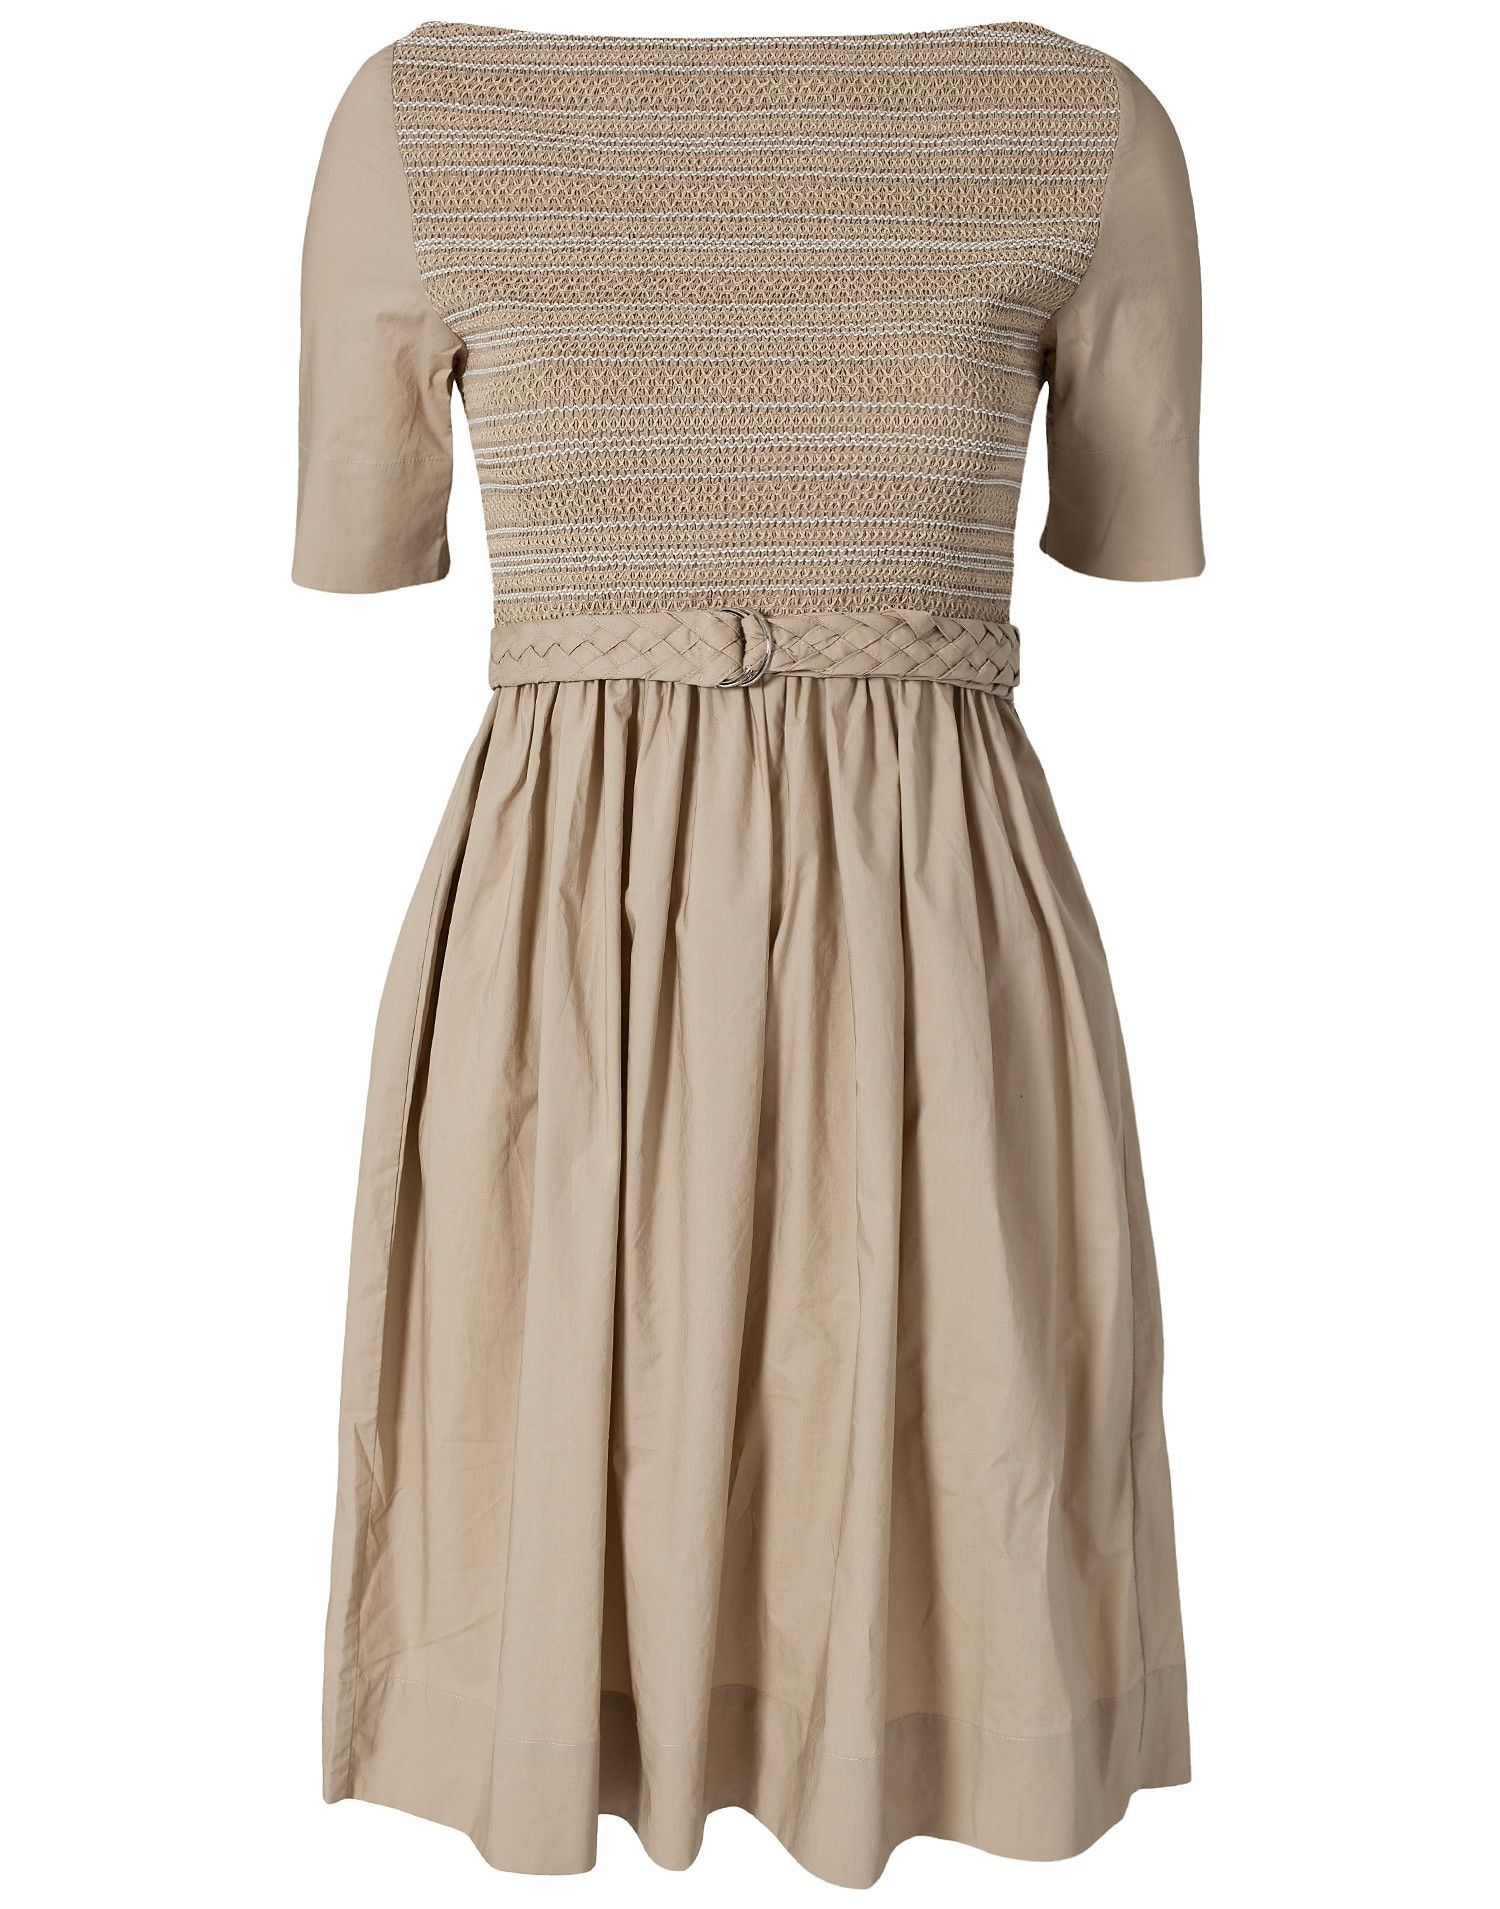 Nomi Silky Dress from J Lindeberg.